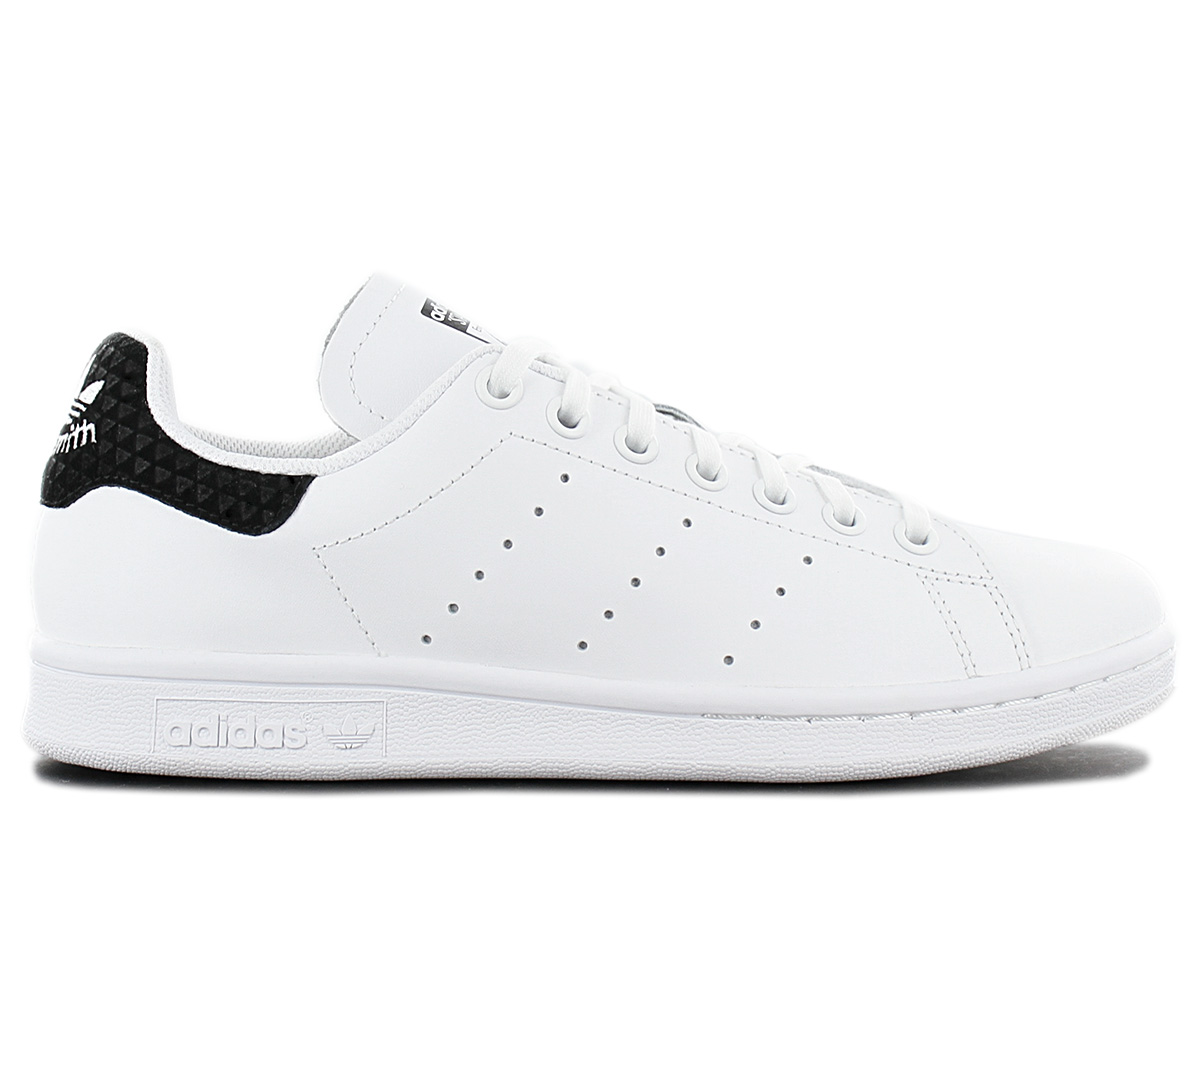 Details about Adidas Originals Stan Smith Women's Sneakers F34330 White Leather Shoes Trainers